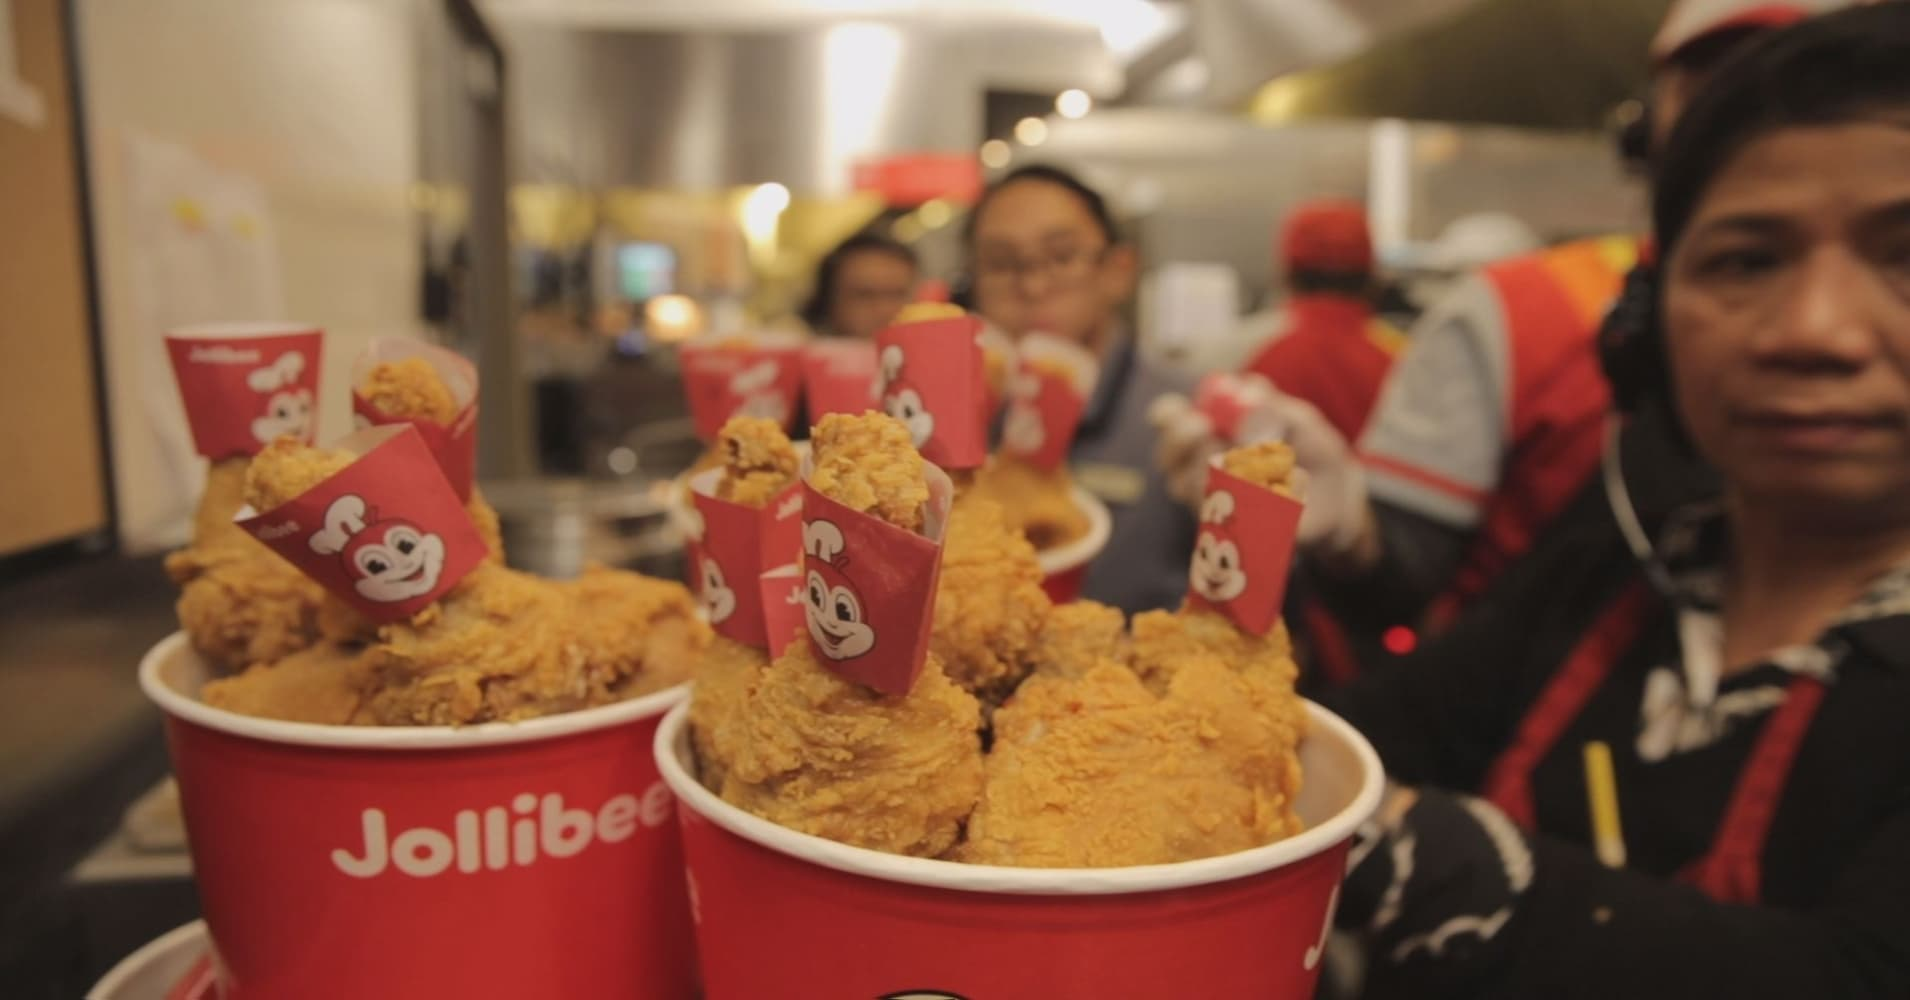 Why everyone is obsessed with Filipino fast food chain Jollibee